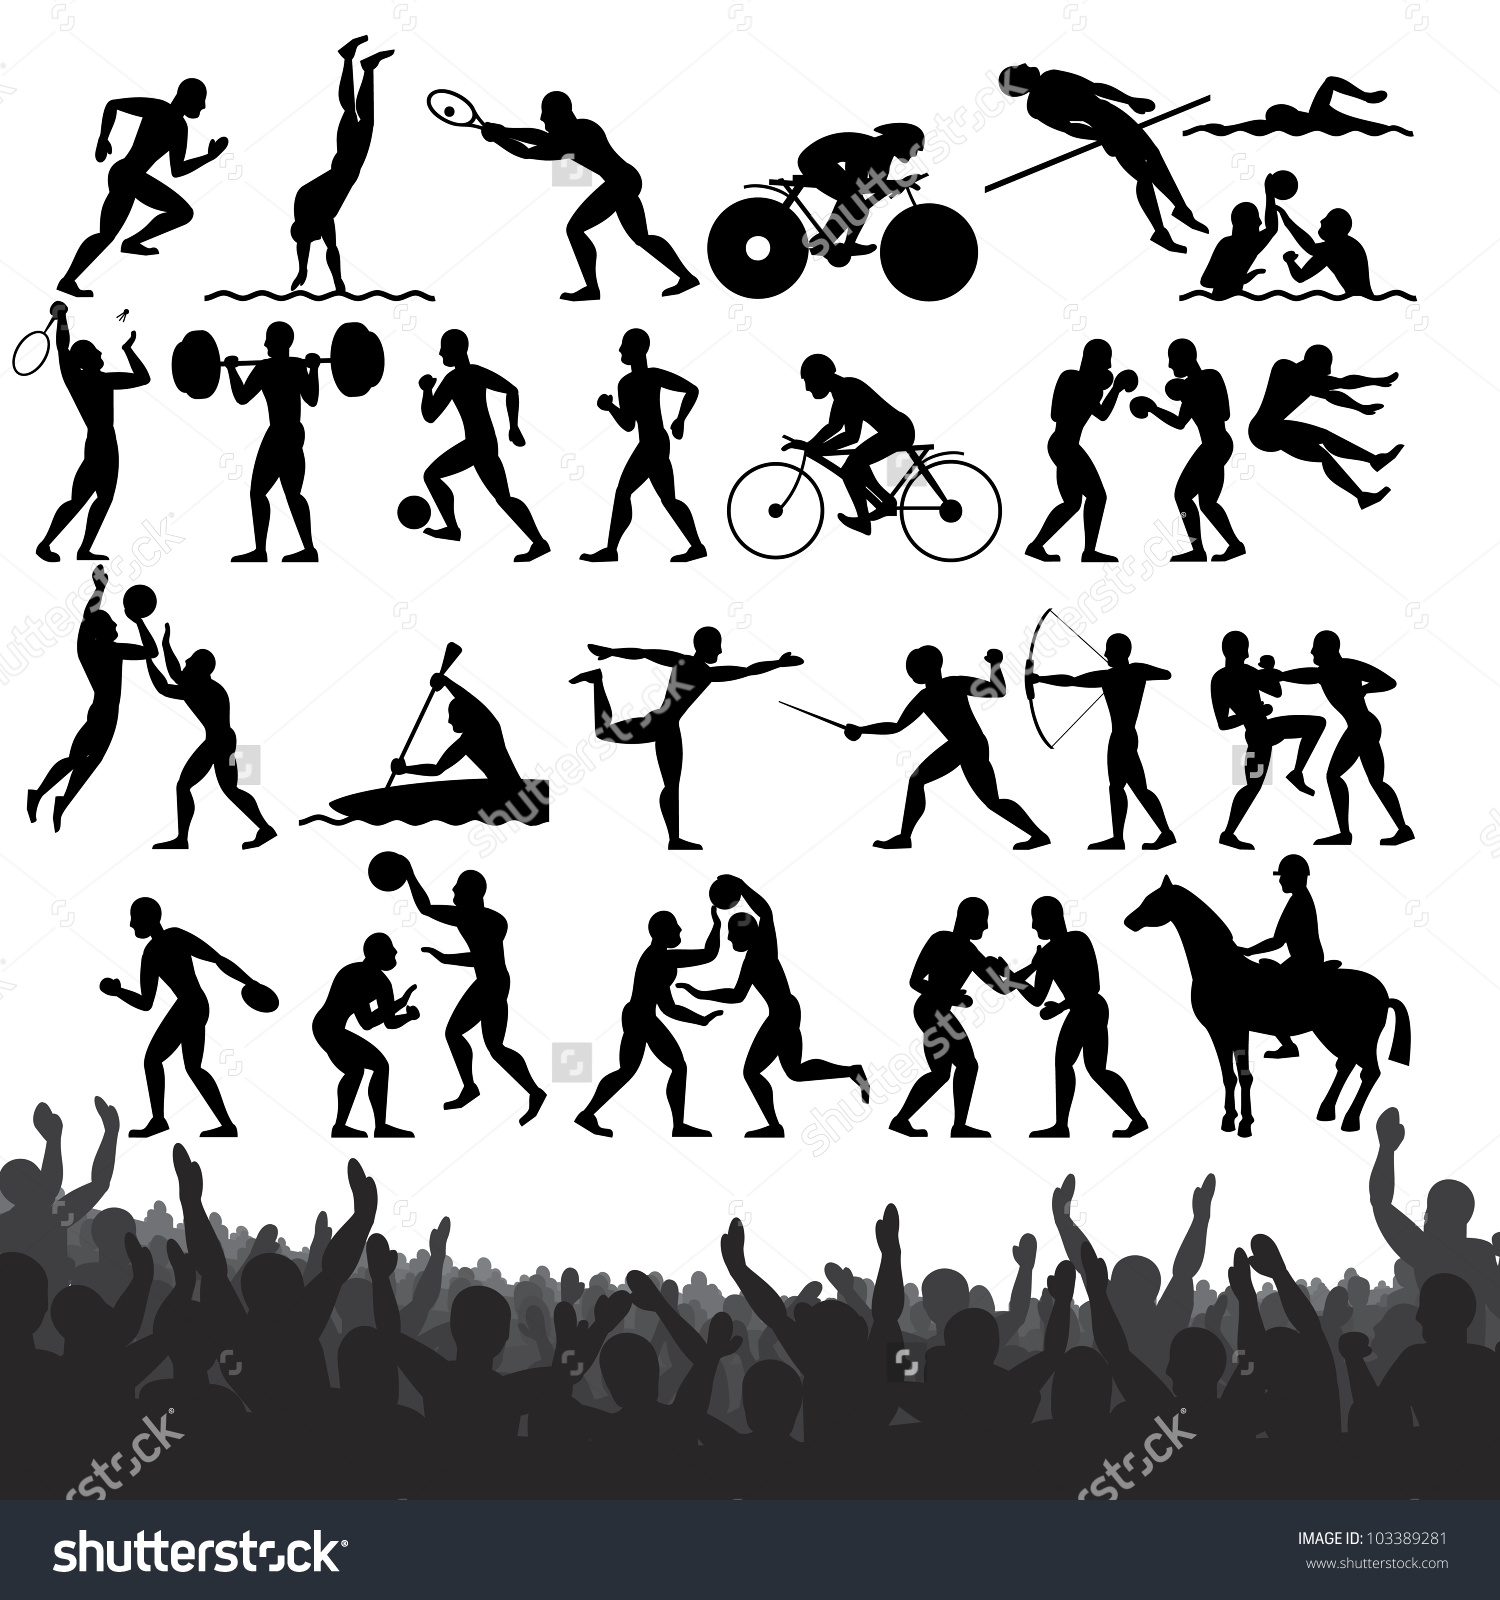 Olympic Game Clipart.